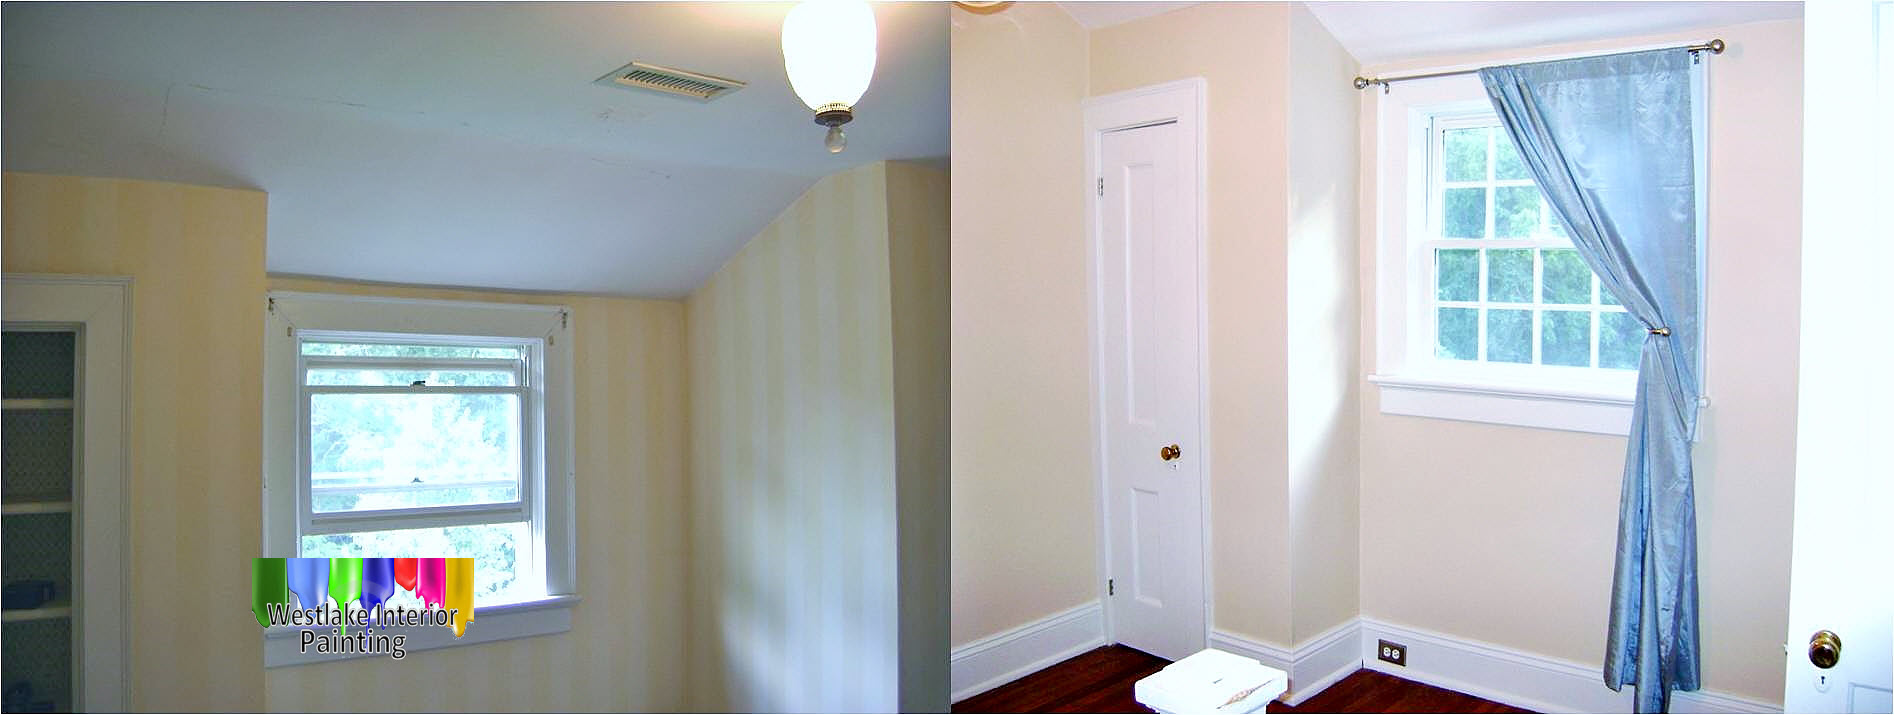 wallpaper removal before and after